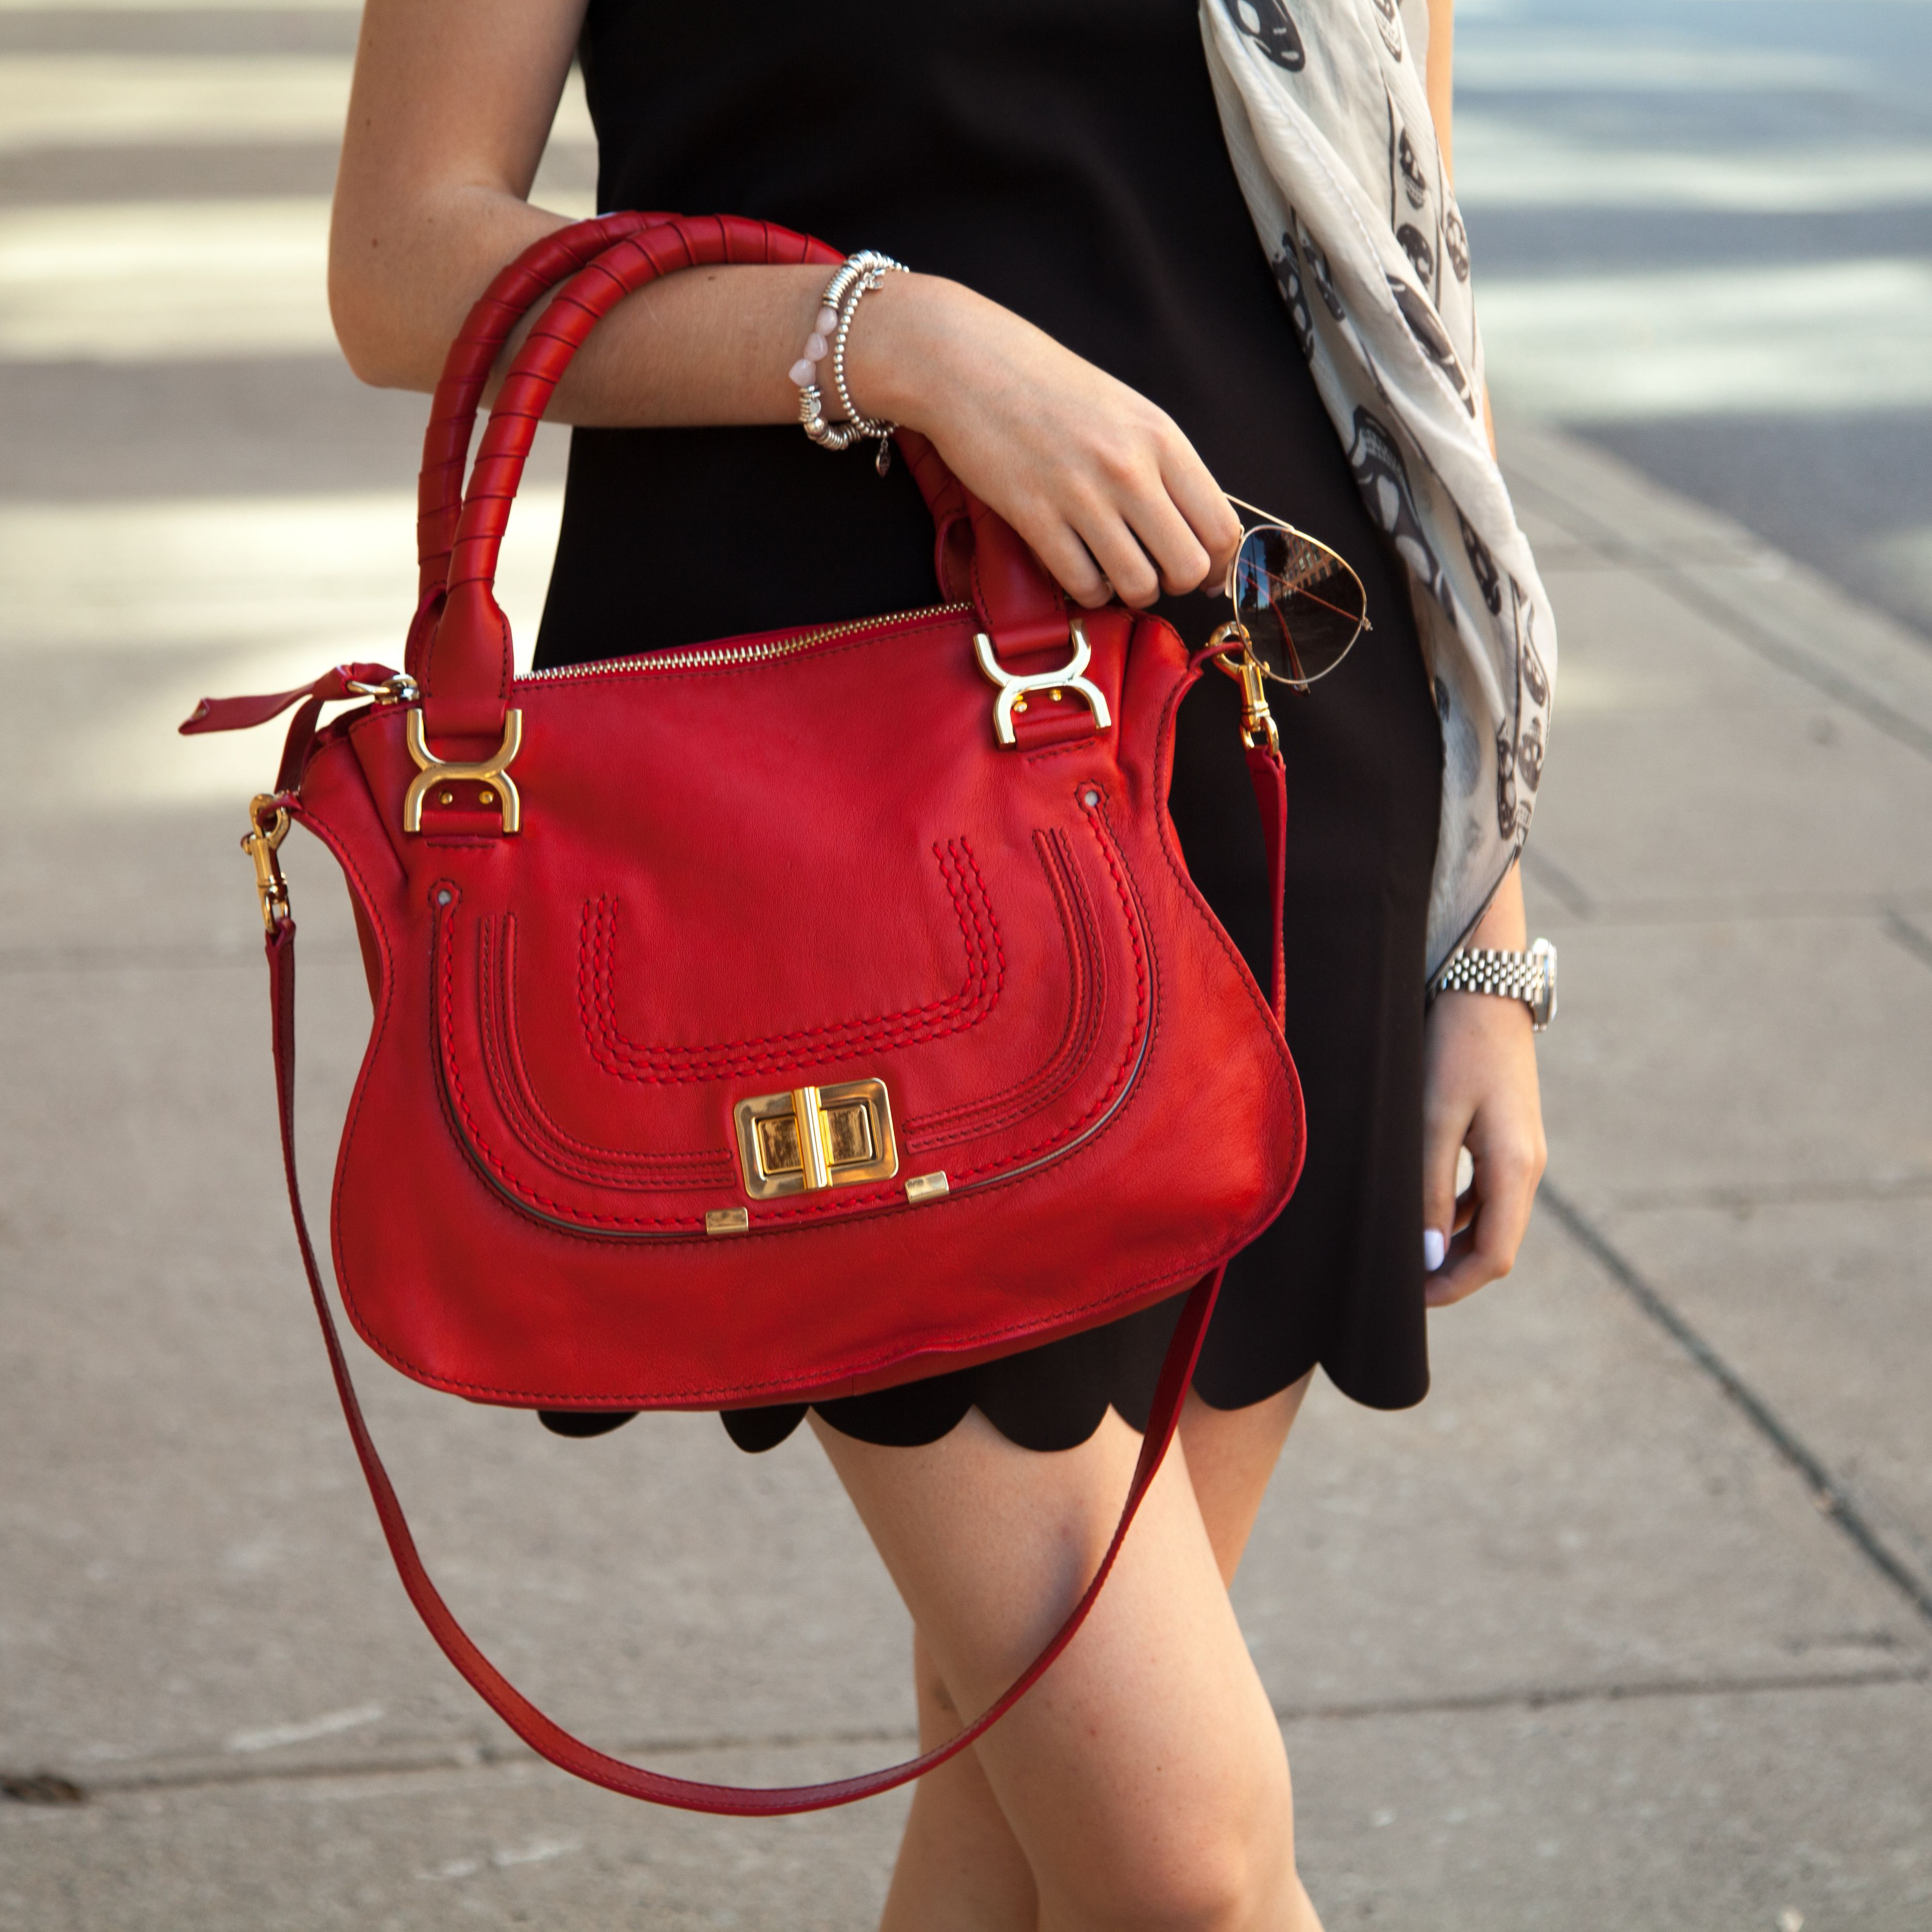 Chloe Marcie Bag In Red Leather Find Beautiful Pre Owned Luxury